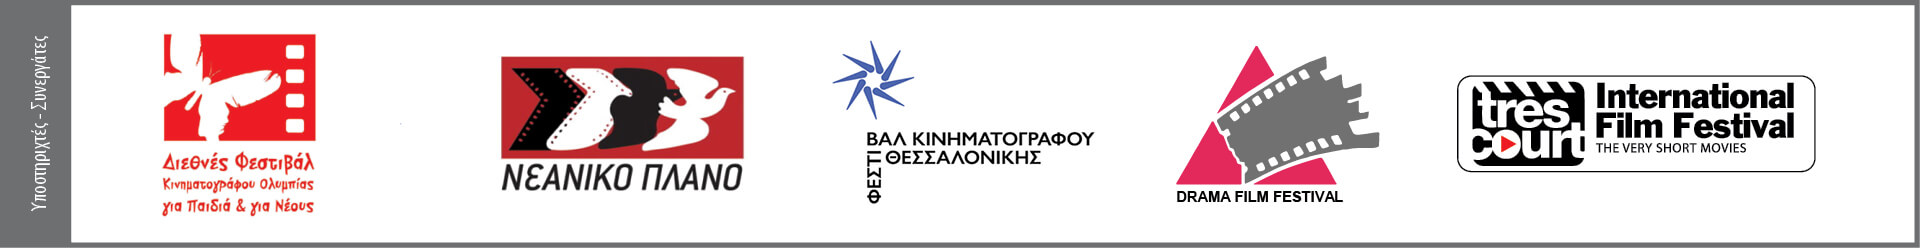 Sponsors and supporters of Chania Film Festival